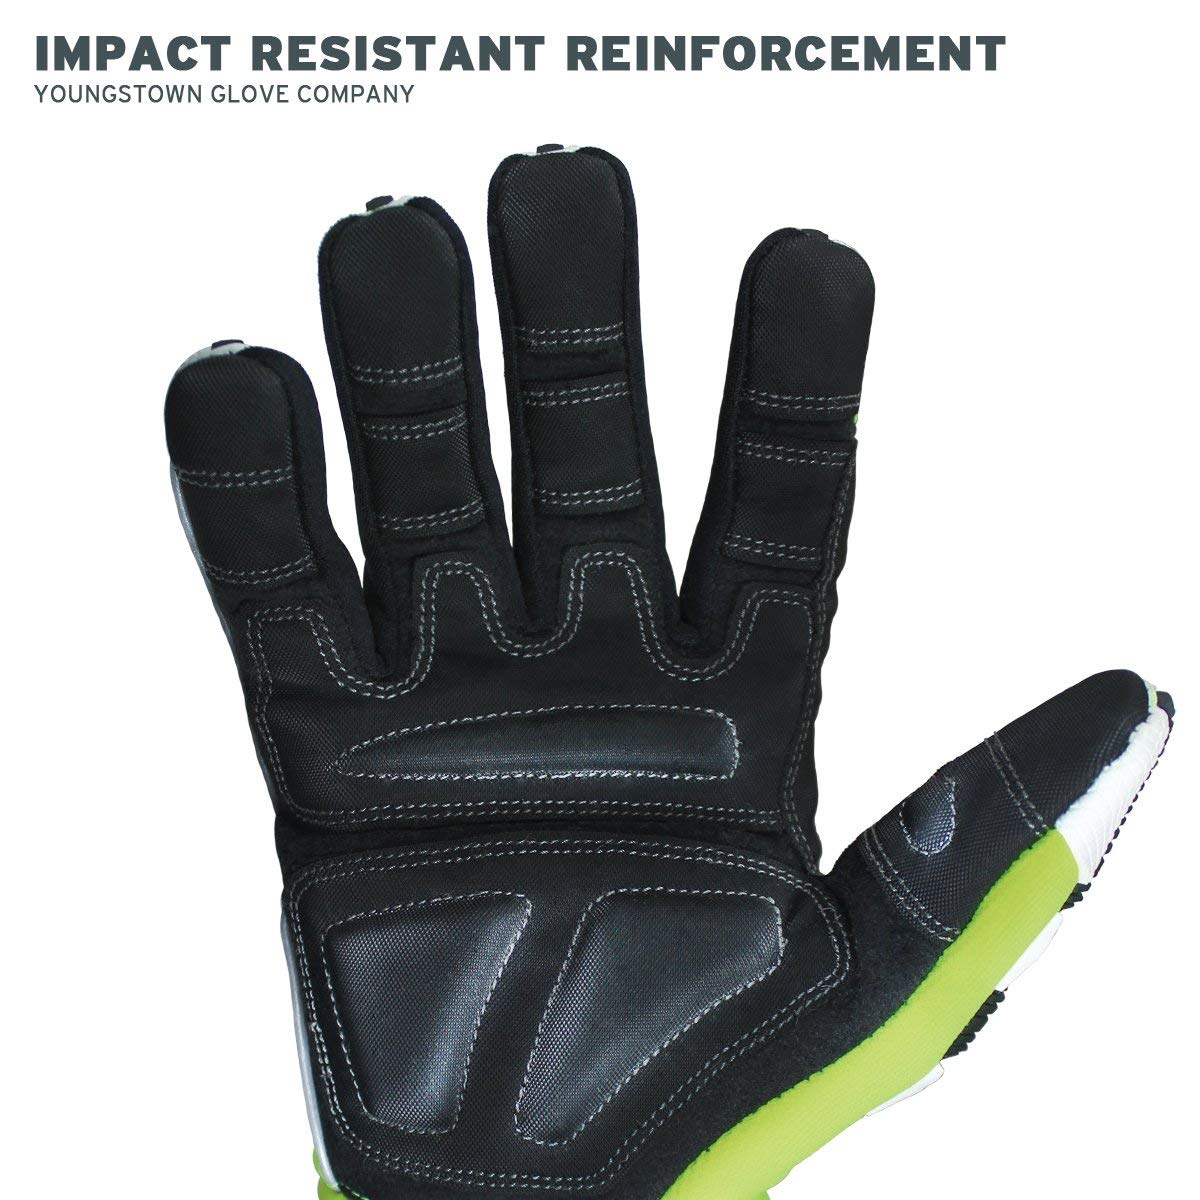 Cut Resistant Gloves Bundle - 1 - Firefighter Extrication Gloves (Large) | 1 - Glove Strap (lime Green) | 1 - Firefighter Journal (Track training hours, Run activities, work, ect.) by Generic (Image #5)